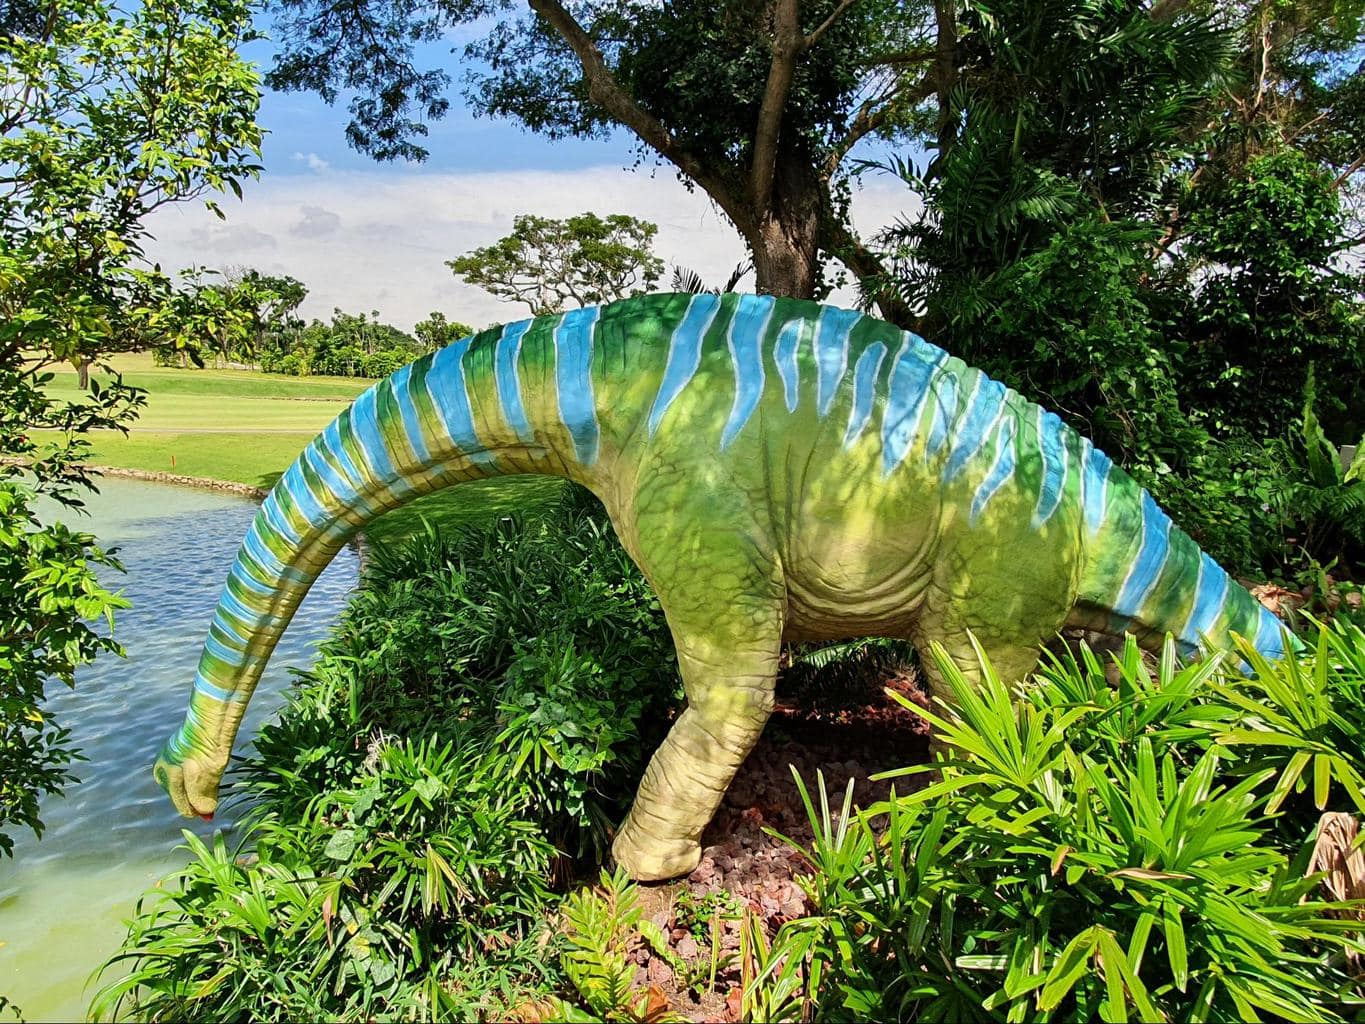 Gorgeous dinosaurs at Jurassic Mile Singapore